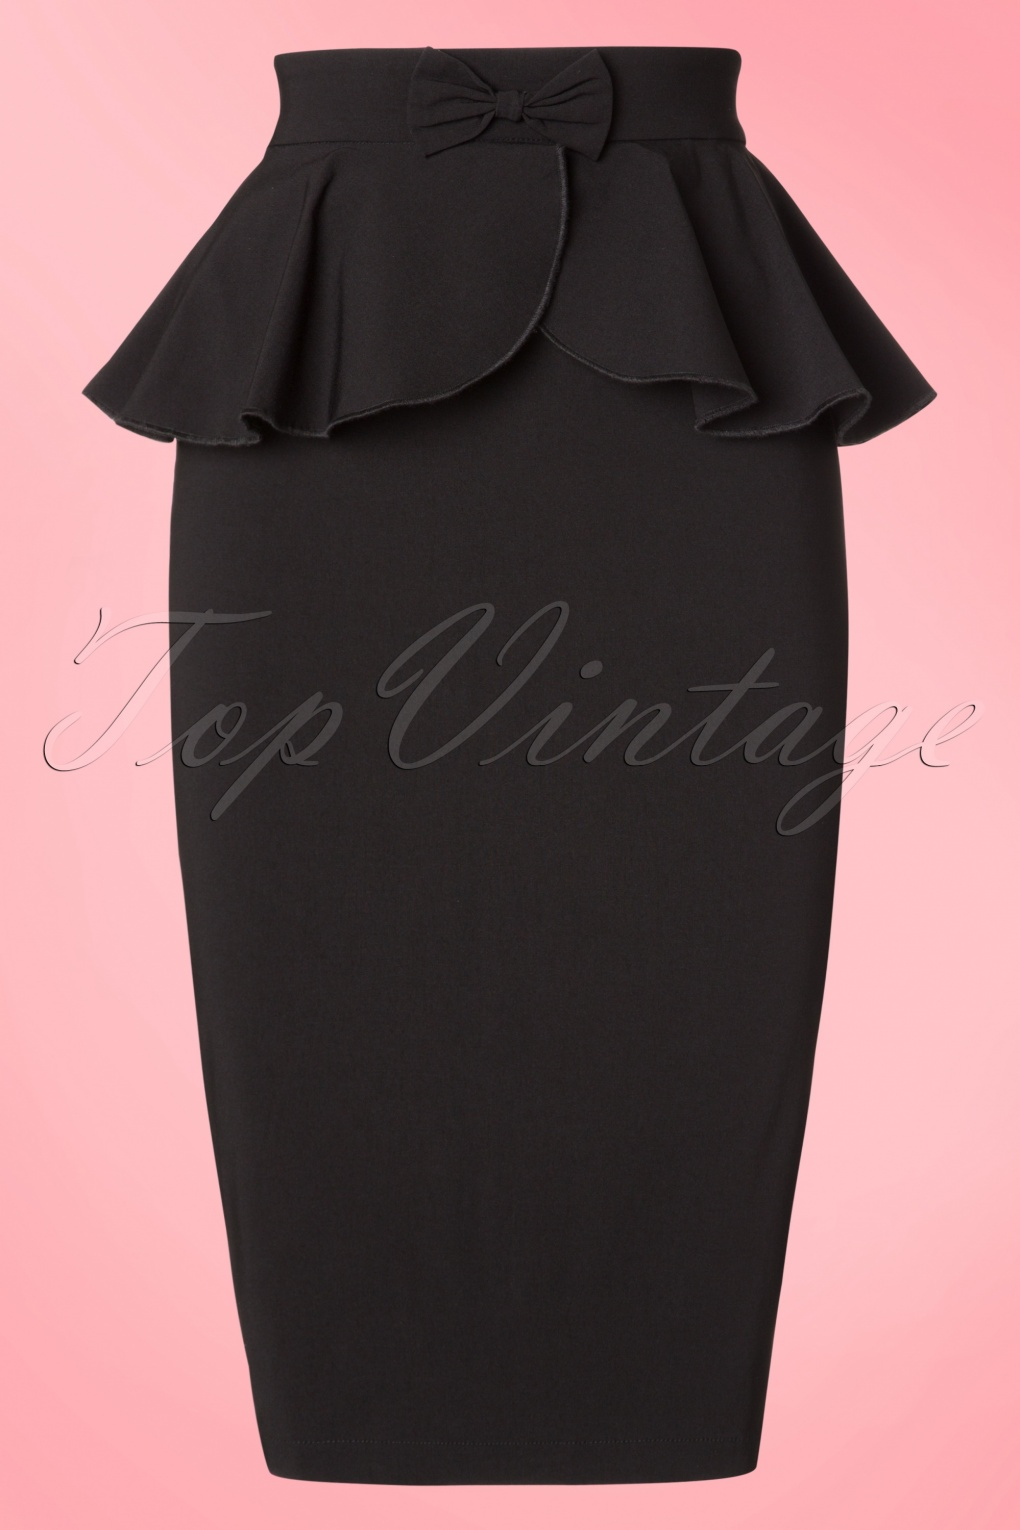 50s Skirt Styles | Poodle Skirts, Circle Skirts, Pencil Skirts 1950s 50s Pepper Peplum Pencil Skirt in Black £26.48 AT vintagedancer.com